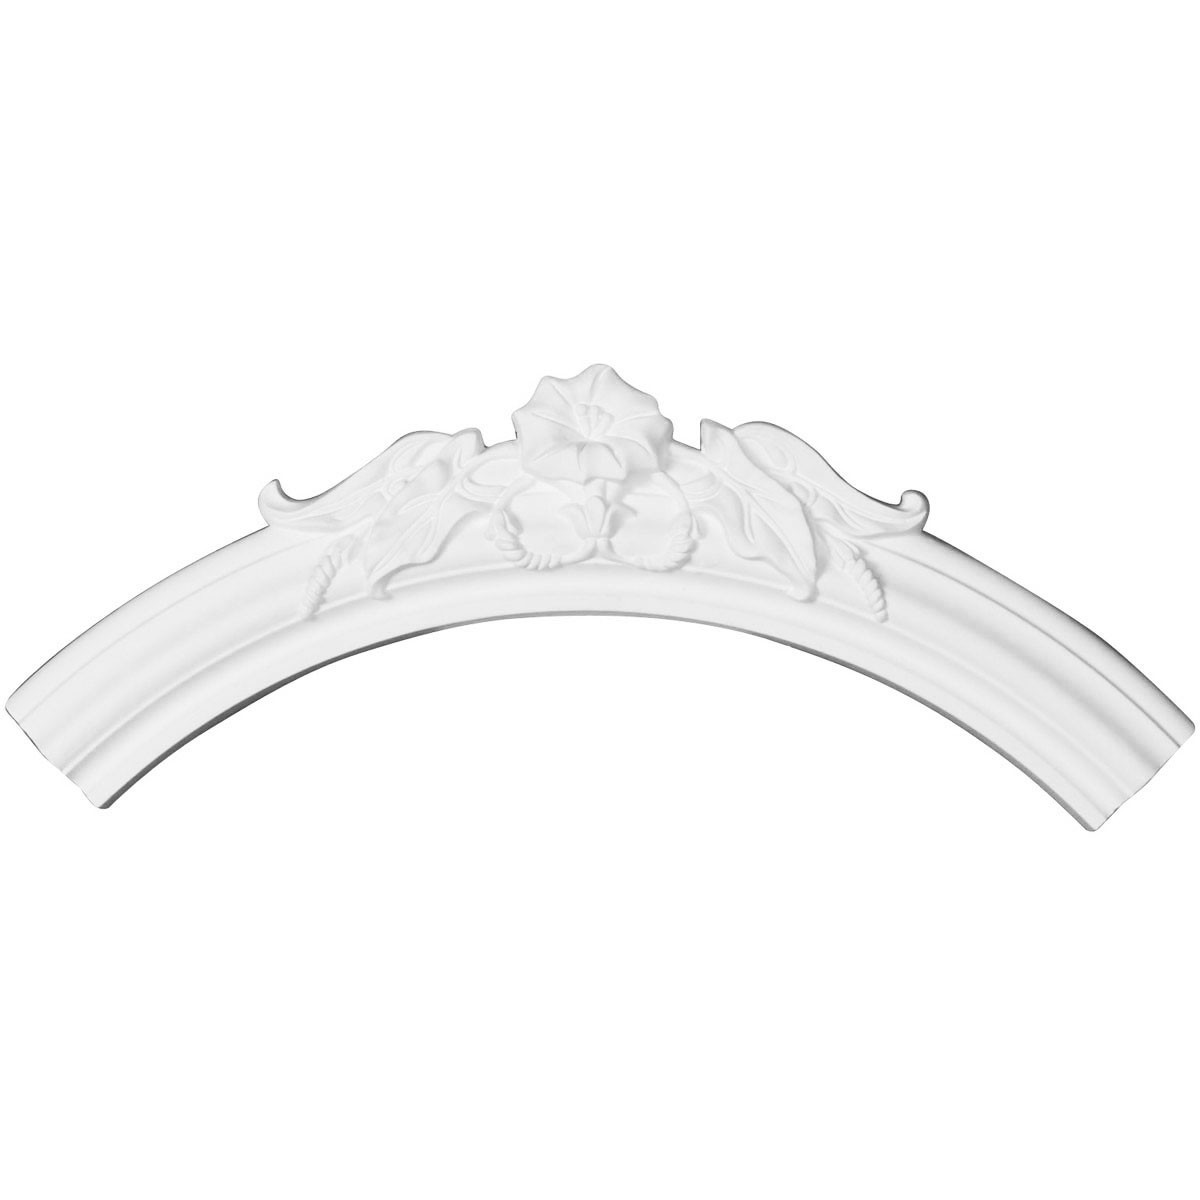 """EM-CR29FL - 28 3/4""""OD x 23 5/8""""ID x 2 5/8""""W x 7/8""""P Flower Ceiling Ring (1/4 of complete circle)"""